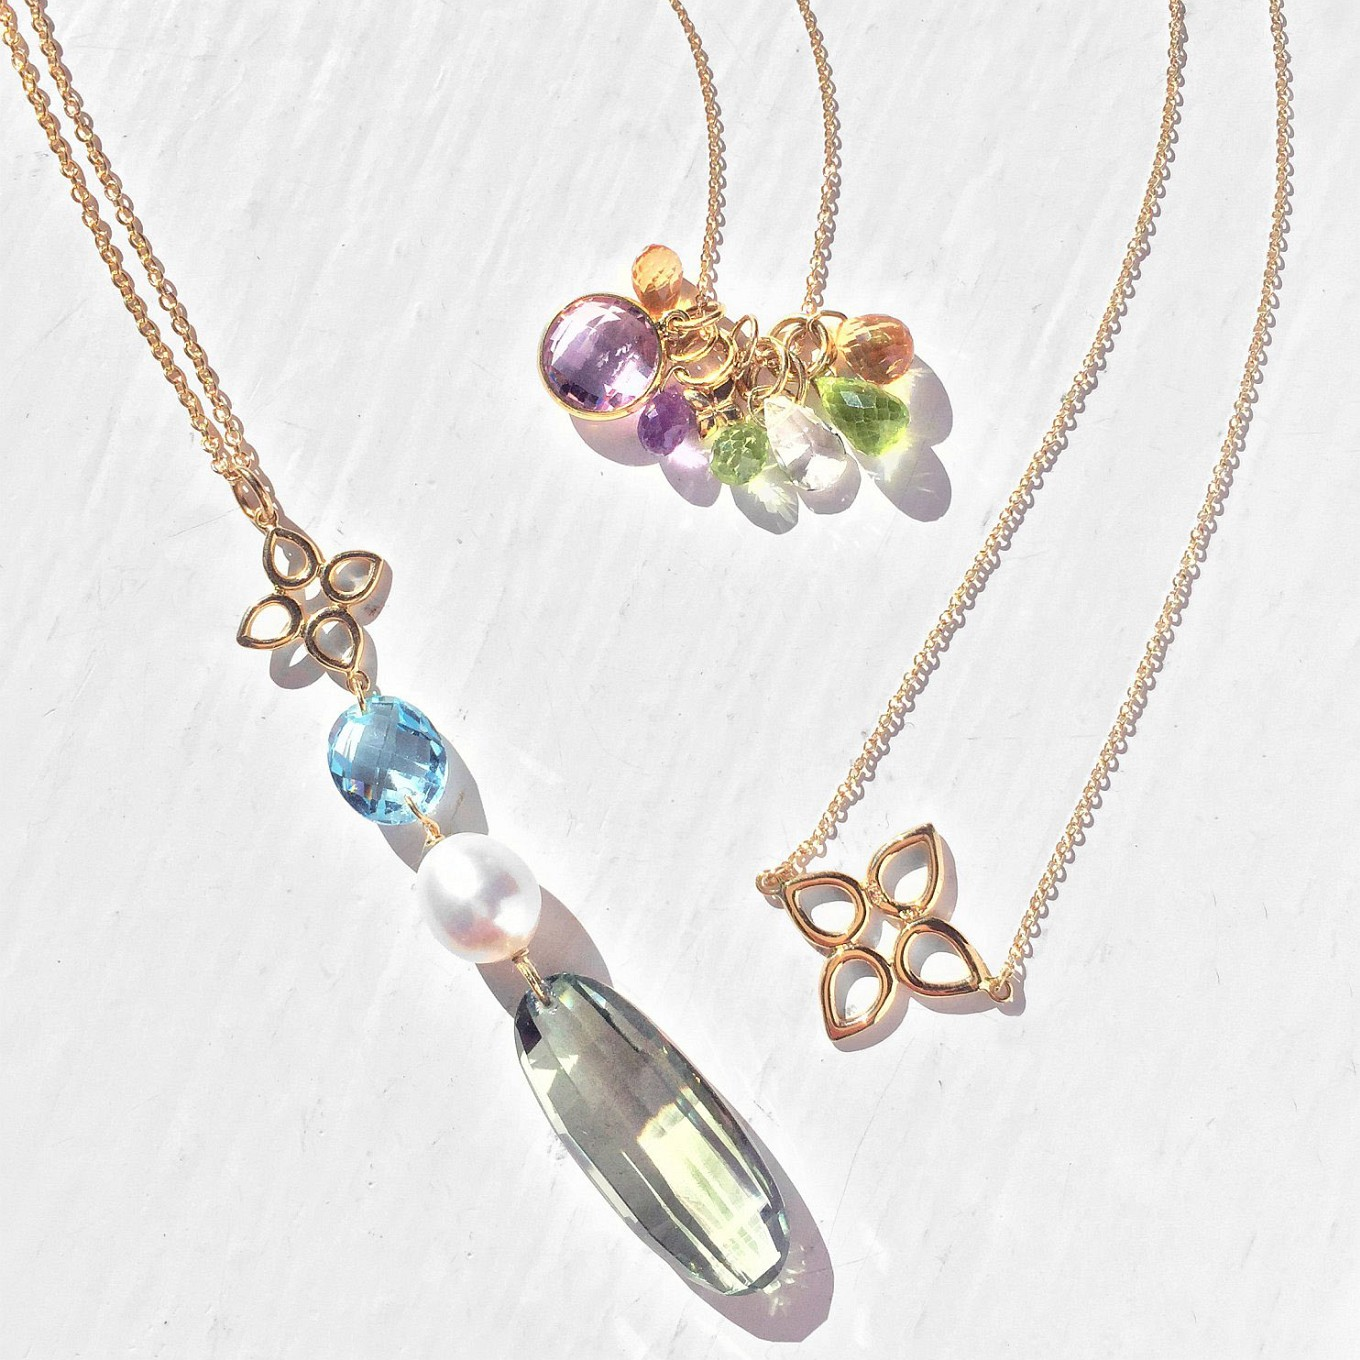 J<span class='lowercase-d'>d</span>J Studio Pendants. Gemstone & Gold